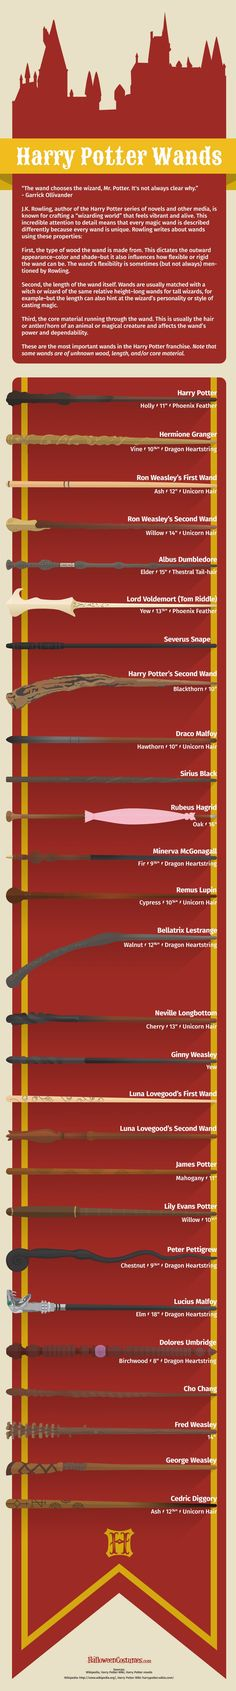 Harry Potter Wands [Infographic] What wand did your favorite Harry Potter carry? - Potter Wands [Infographic] What wand did your favorite Harry Potter carry? - What wand did your favorite Harry Potter carry? Harry Potter World, Theme Harry Potter, Harry Potter Birthday, Harry Potter Love, Harry Potter Books, Harry Potter Universal, Harry Potter Fandom, Harry Potter Memes, Harry Potter Plakat